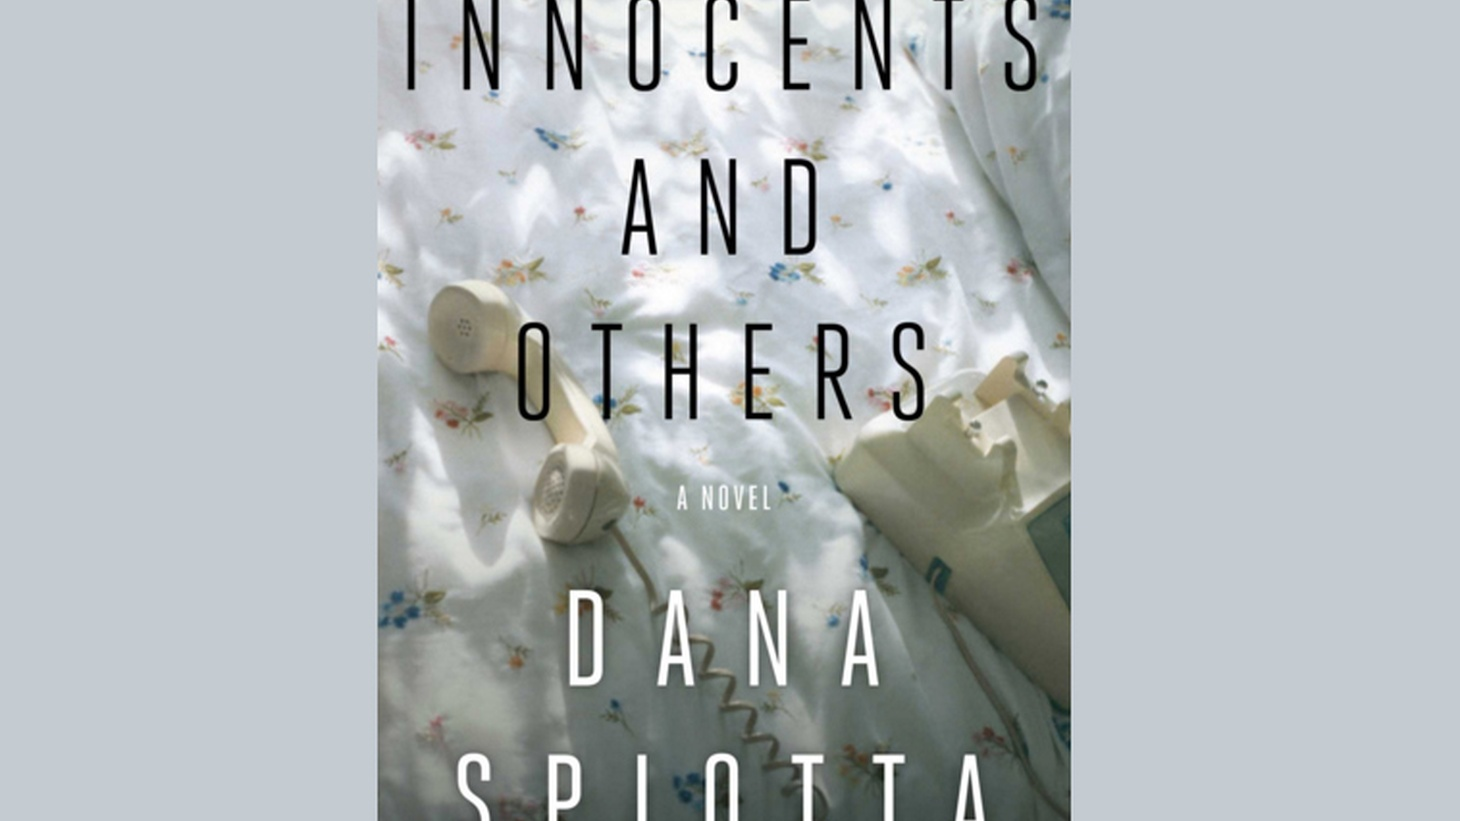 Dana Spiotta's new novel, Innocents and Others, revolves around two best friends. Both women are talented filmmakers, but they don't agree on much. One is a commercial director who makes hits, while the other makes art movies and documentaries.